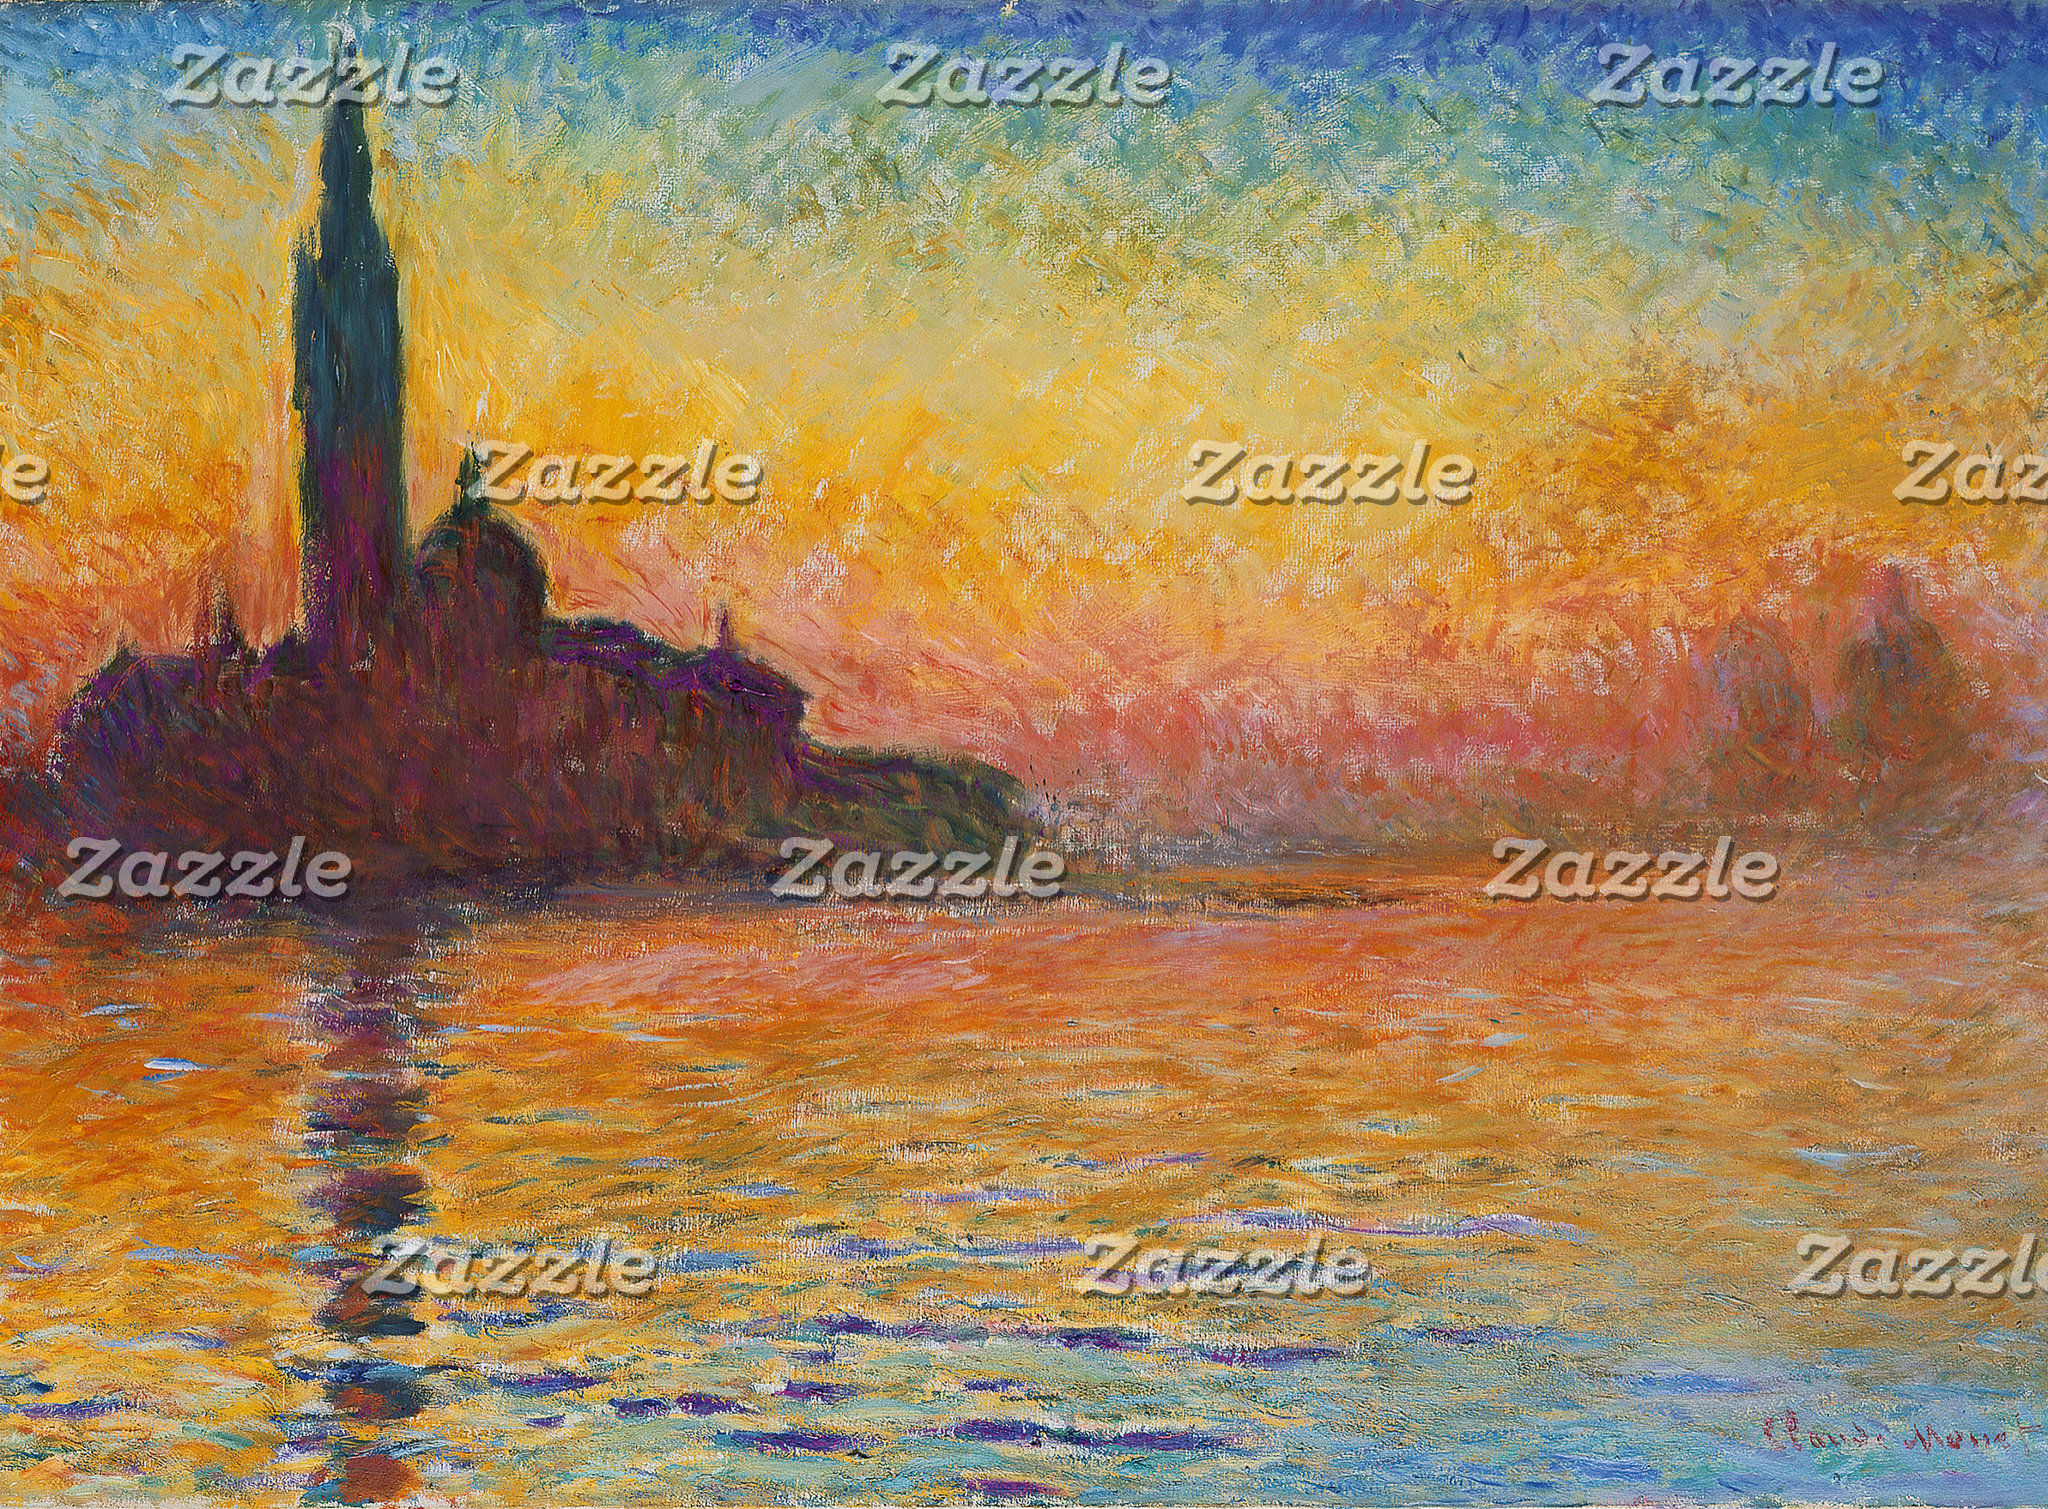 Claud Monet